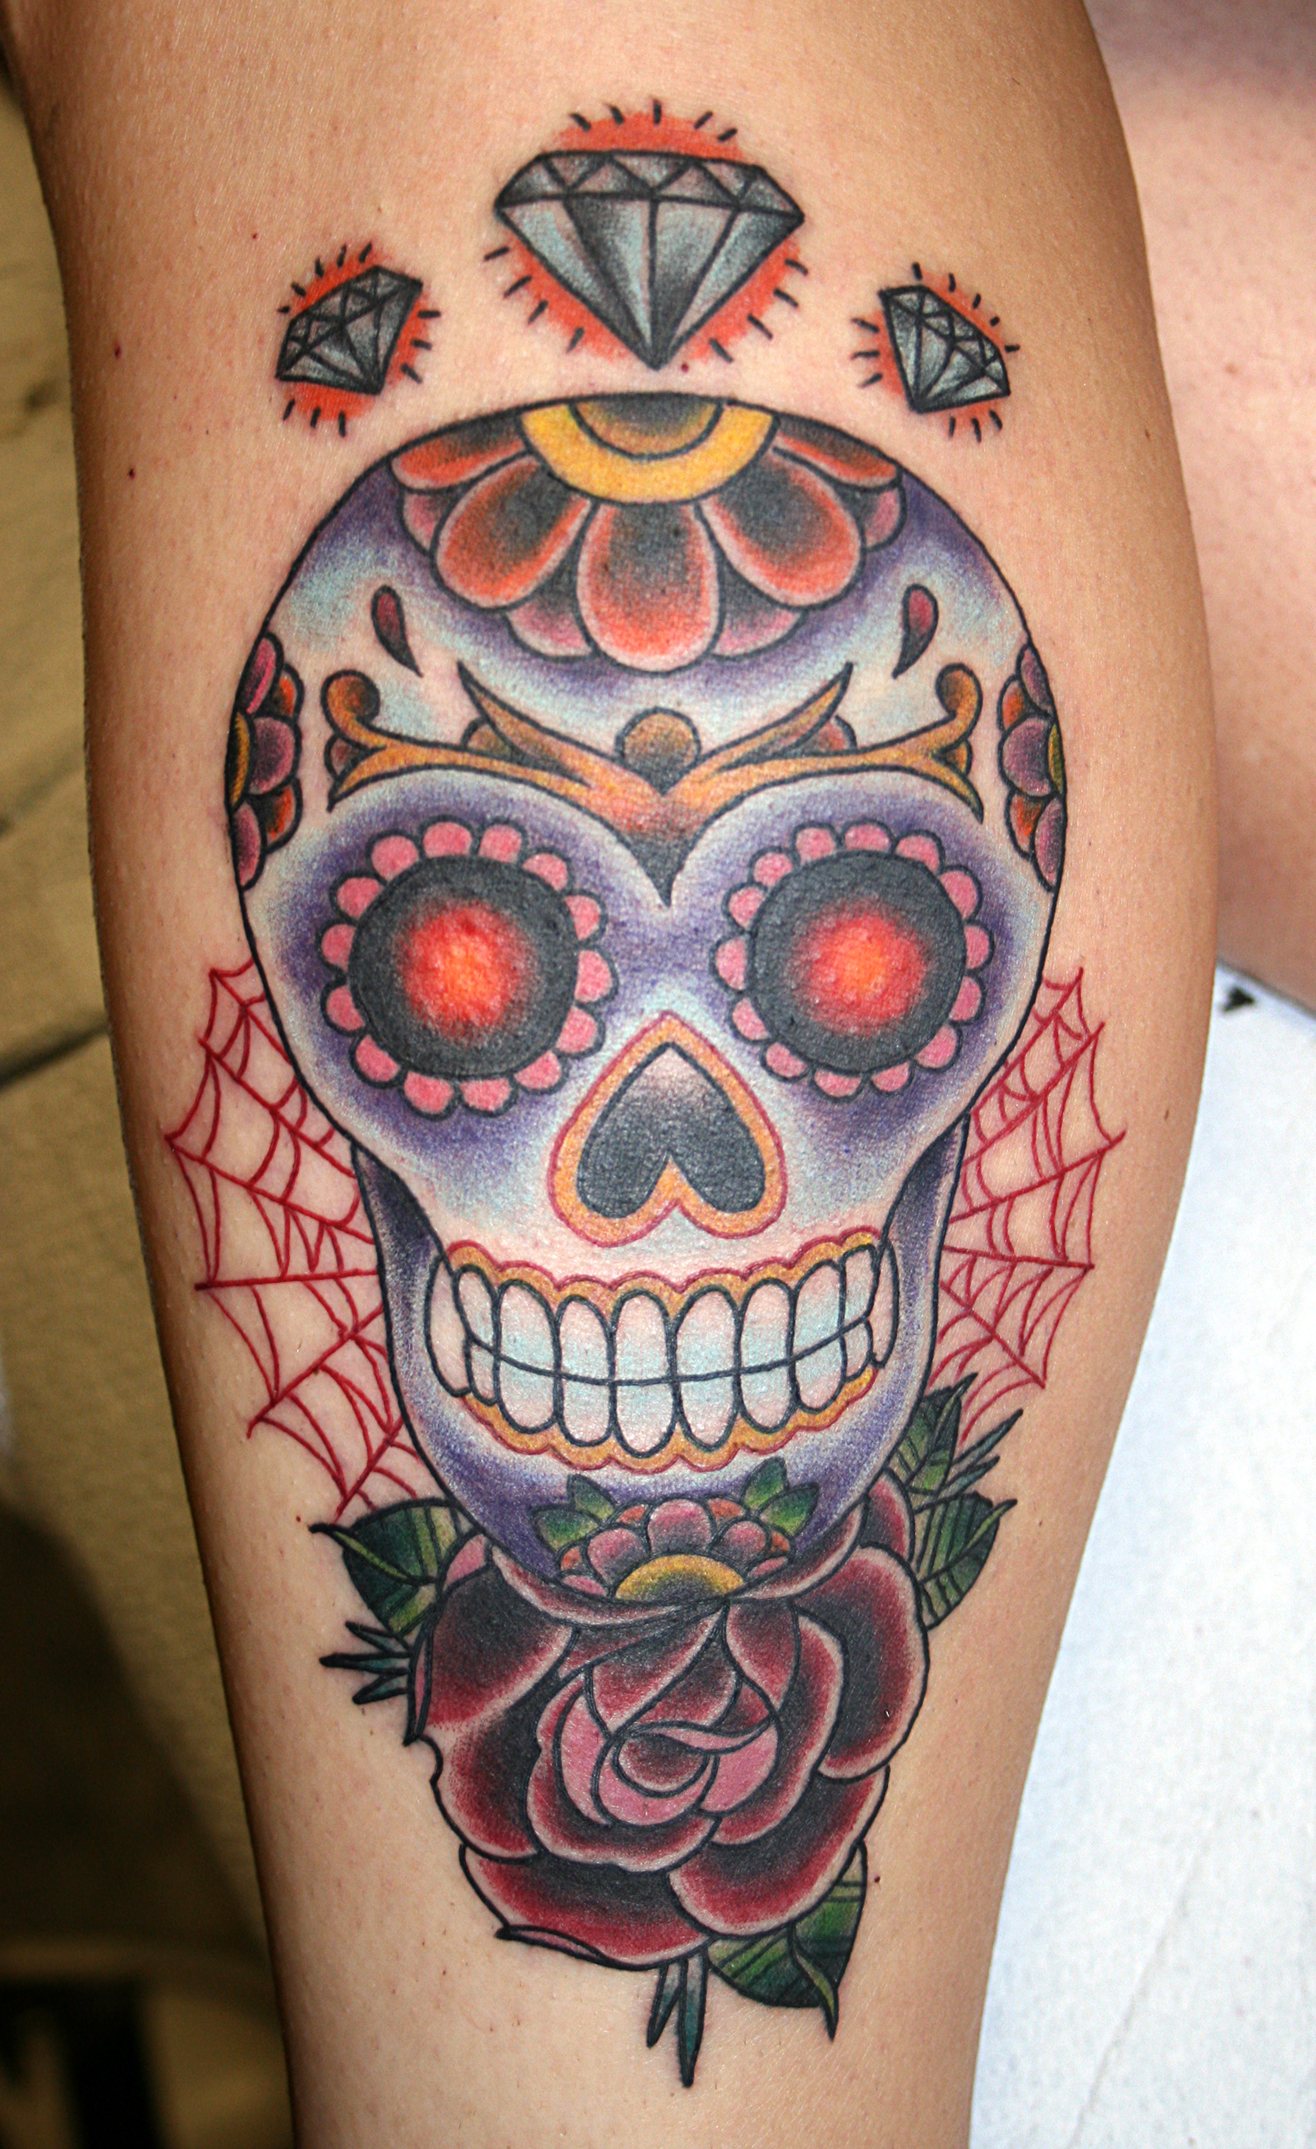 Skull Tattoos Designs Ideas And Meaning Tattoos For You Ideas And Designs